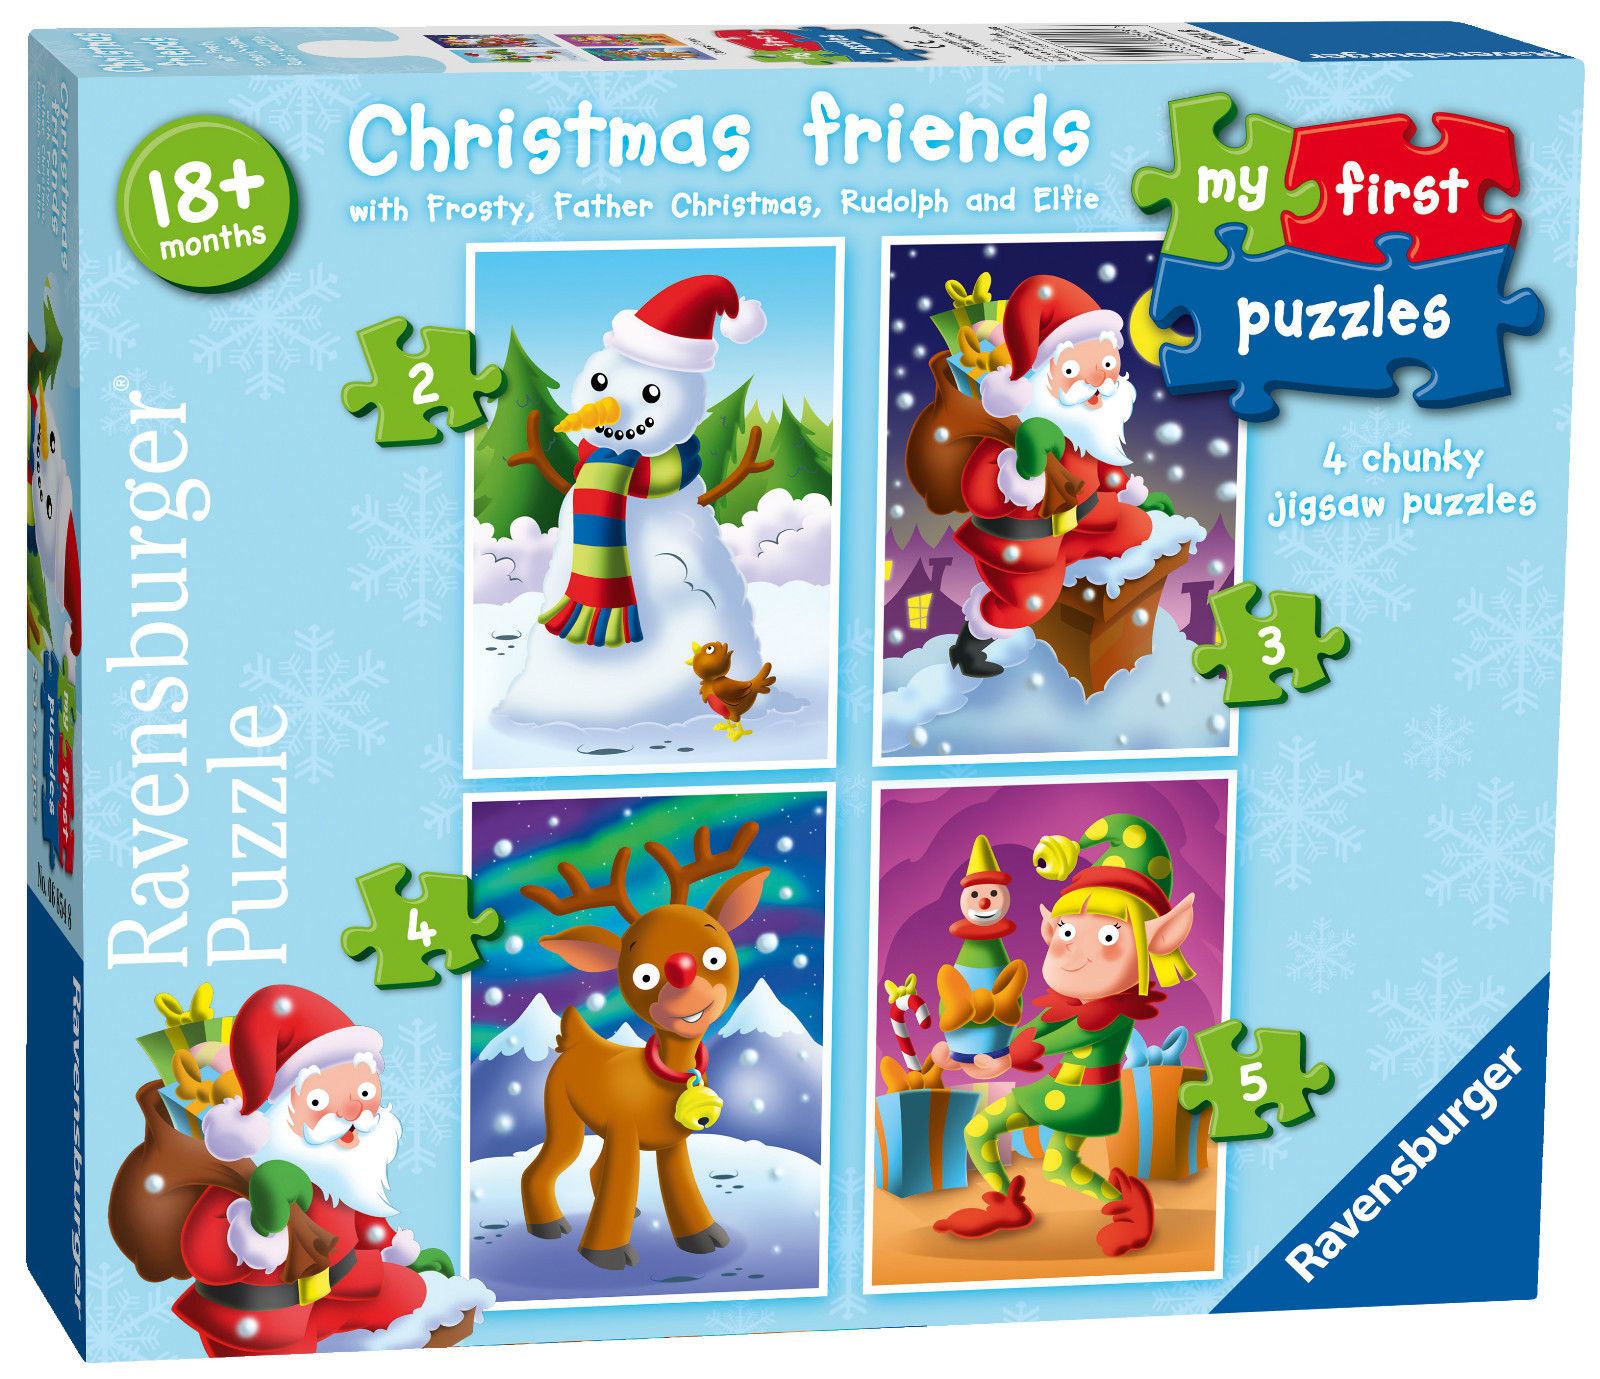 ravensburger-4-puzzles-my-first-puzzles-christmas-friends-2-teile-puzzle-ravensburger-06854